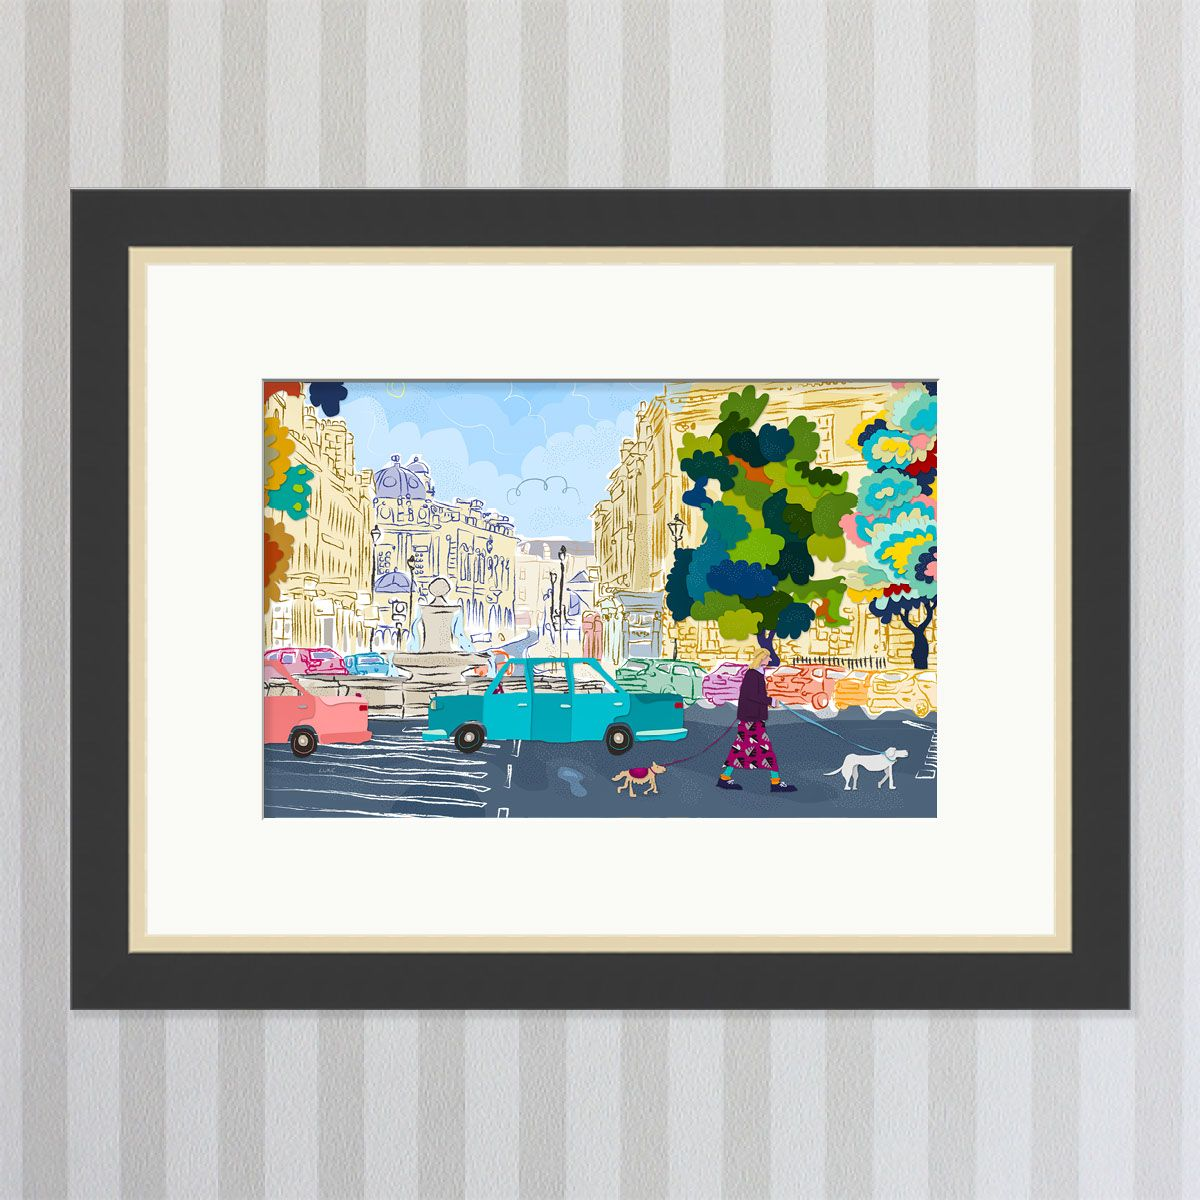 City Of Bath Art Greetings Cards Gifts And Prints Bath Art